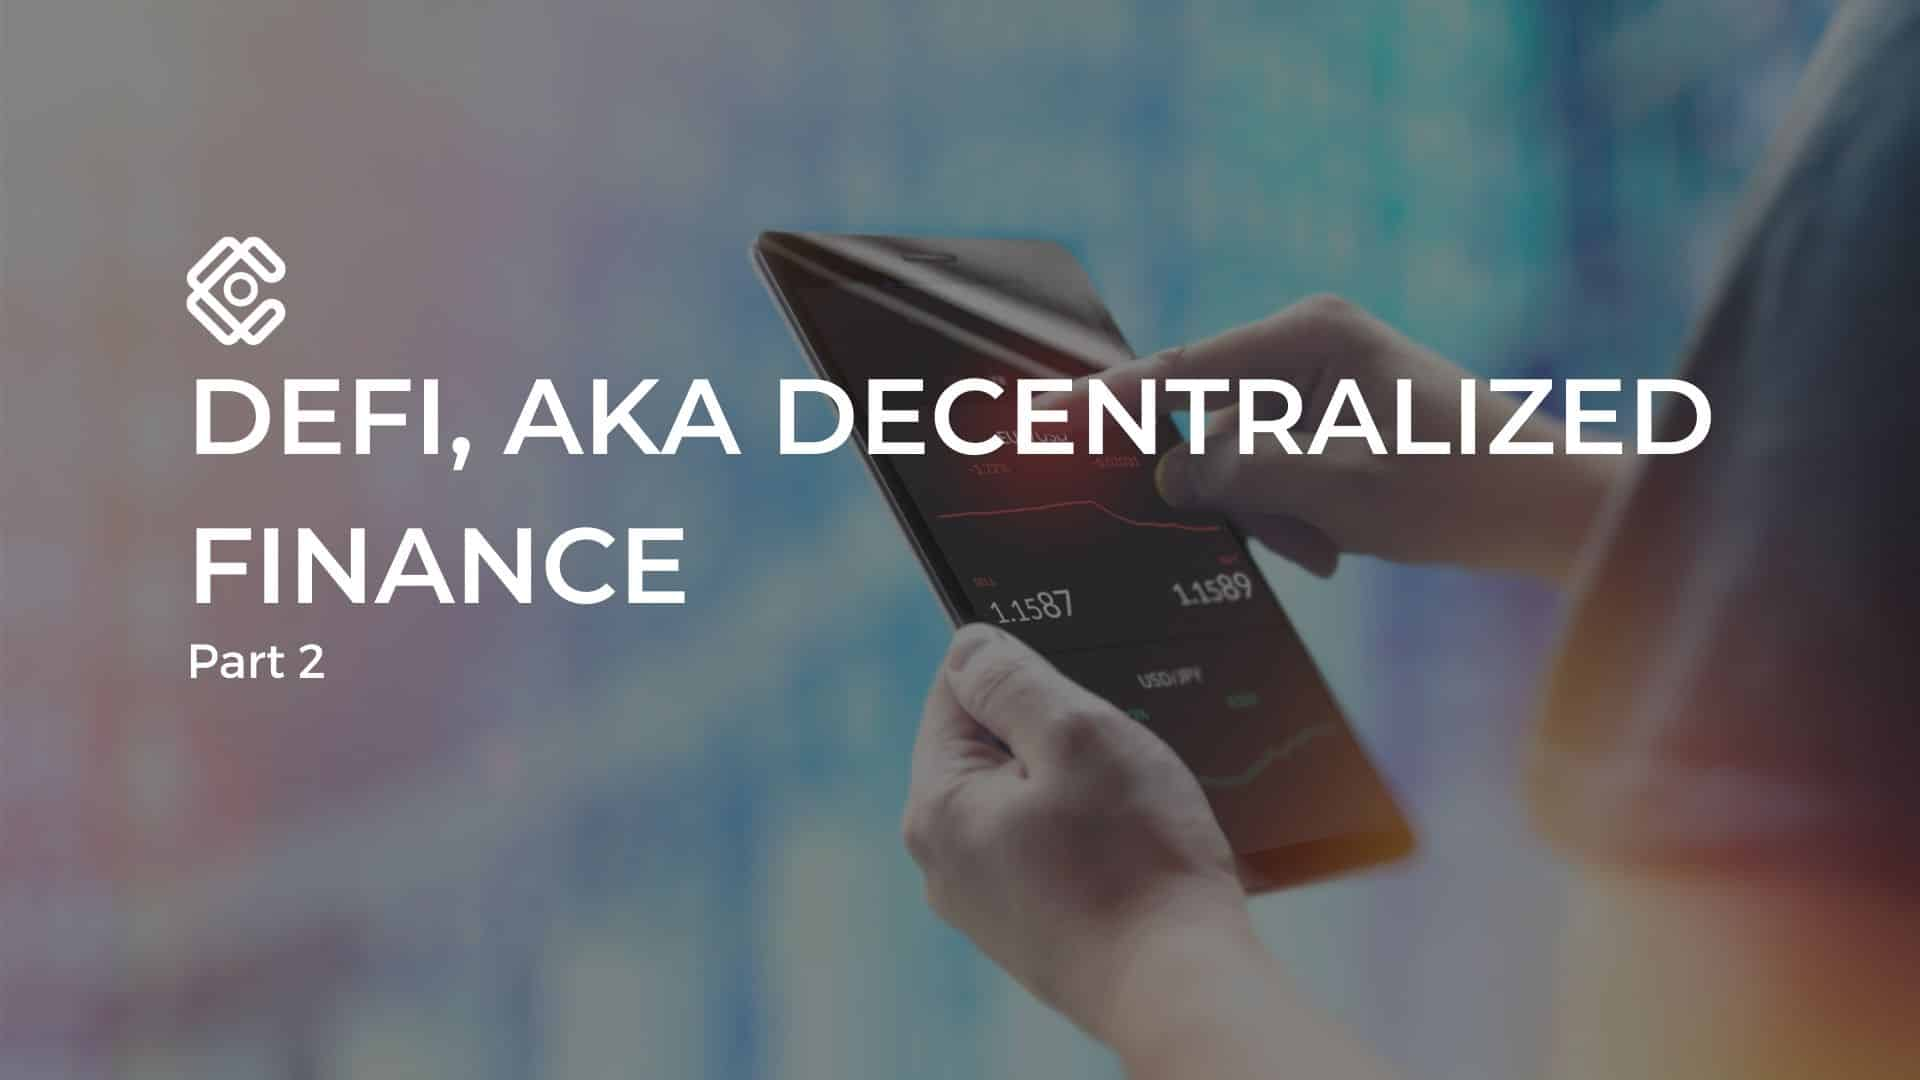 DeFi aka Decentralized Finance. Part 2